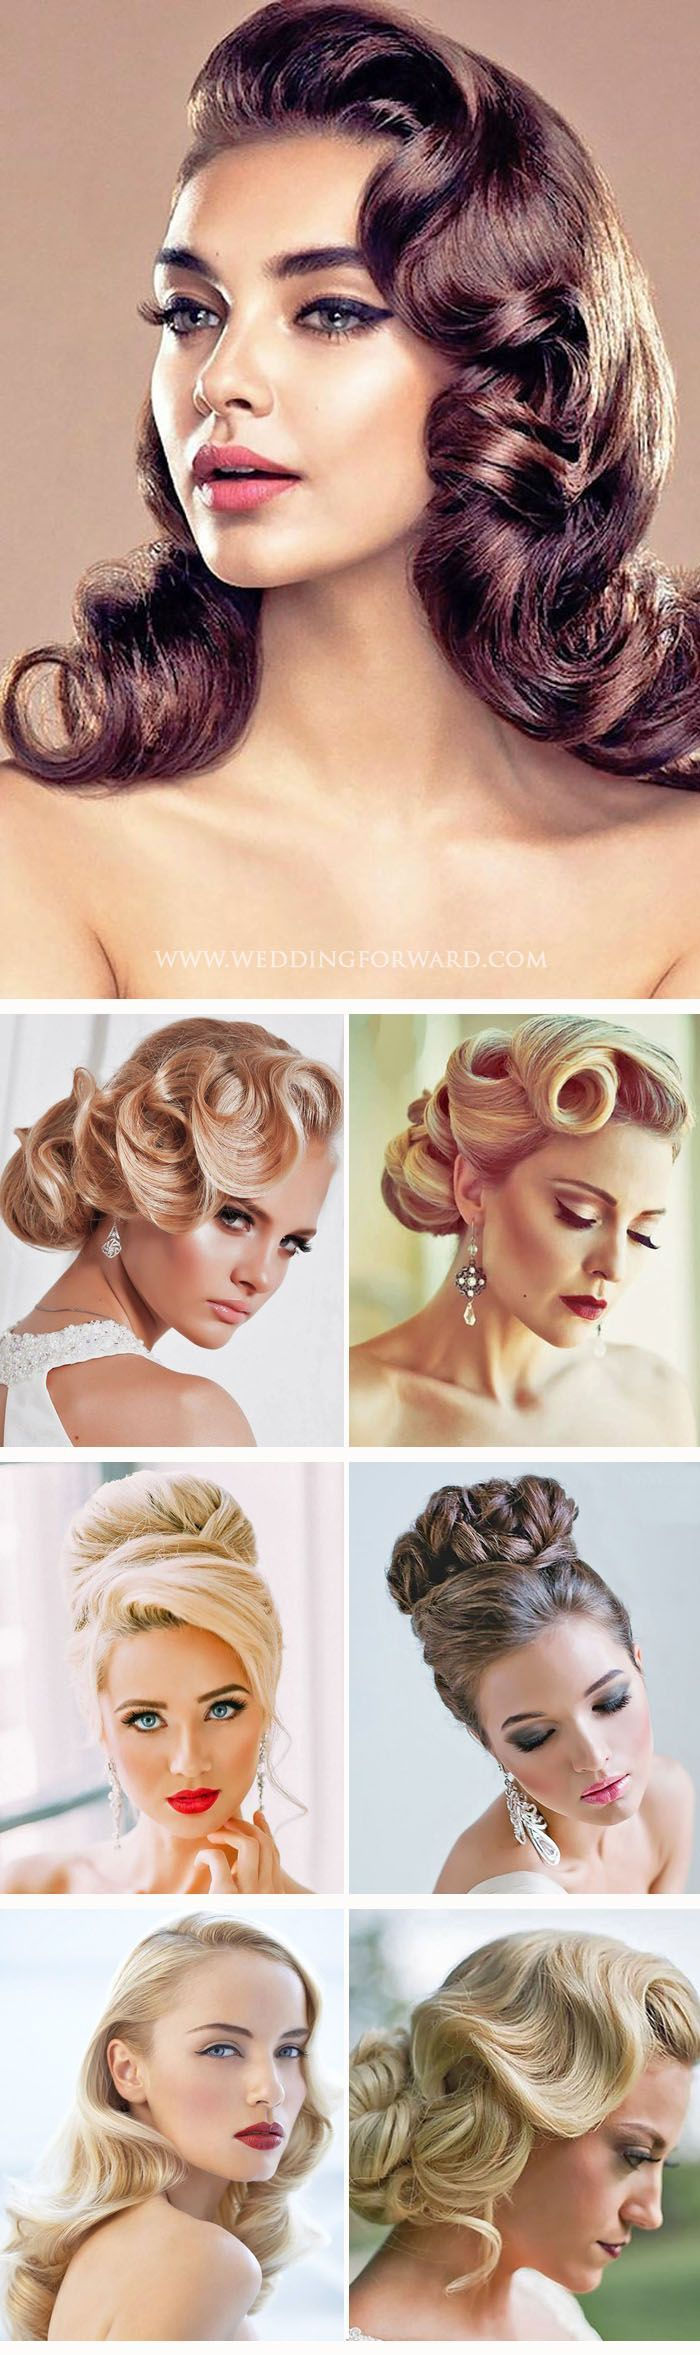 best Hairstyles images on Pinterest Braided hairstyles Long